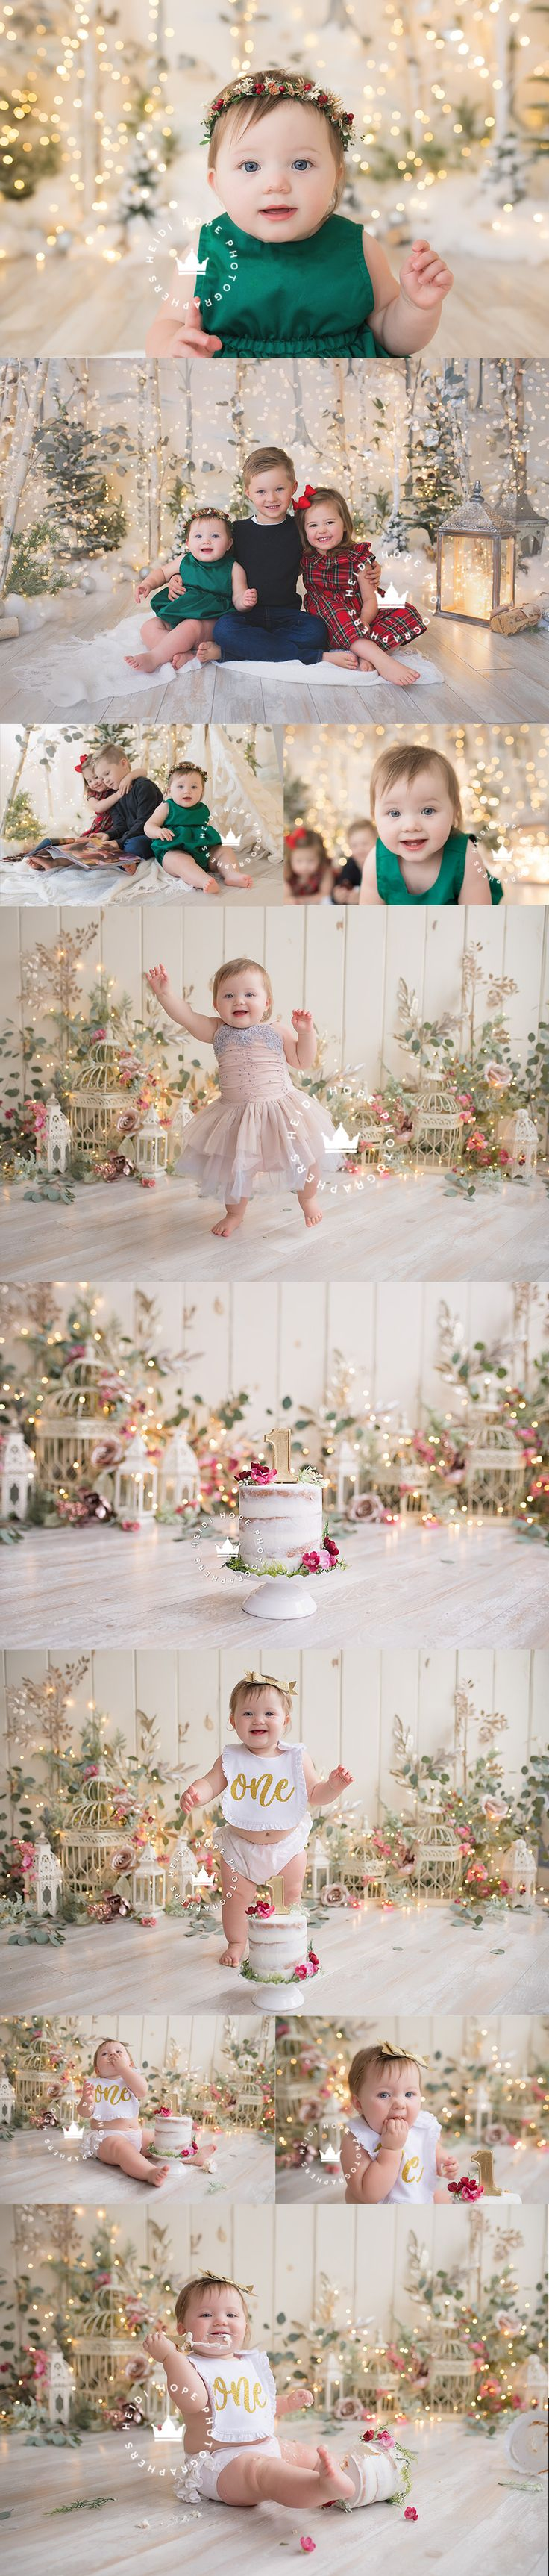 C's magical Holiday first birthday cakesmash session!   Heidi Hope Photography